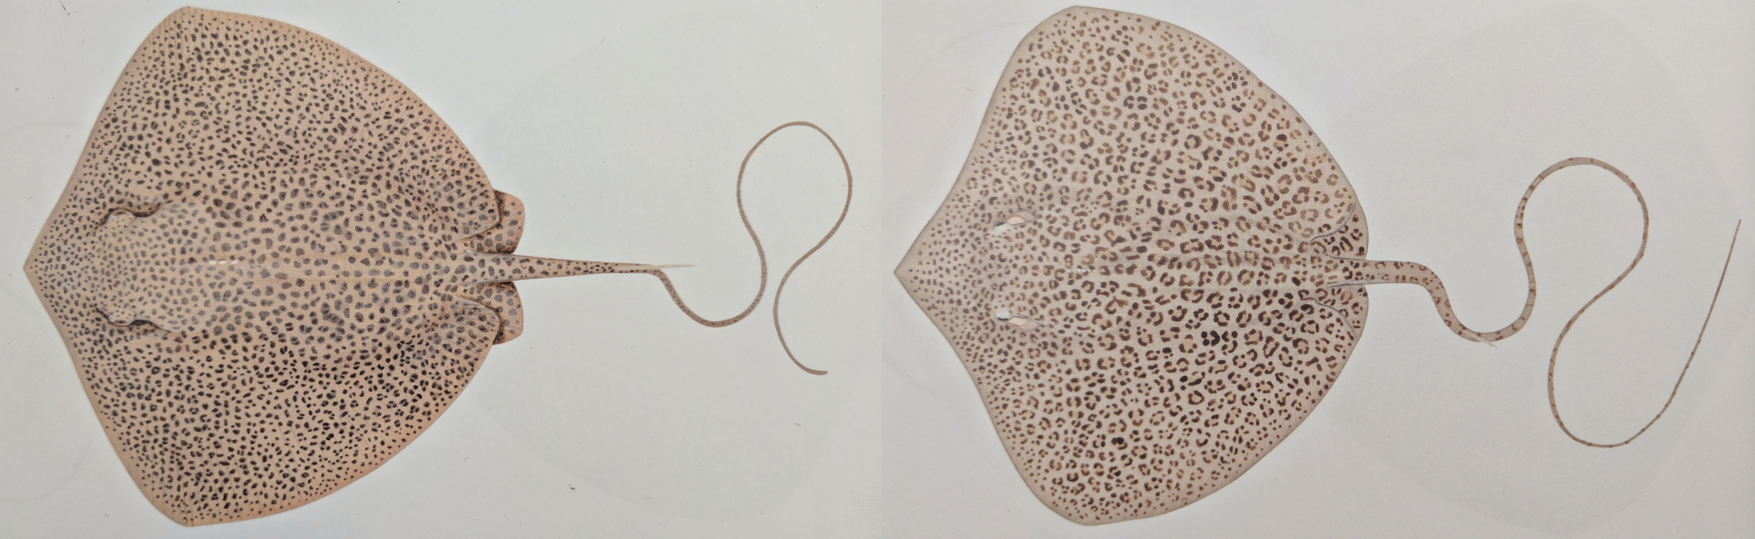 """Note the subtle differences in form, pattern and colouration in the leopard whipray (left) versus the coach whipray (right).  Image:  L indsay Marshall, as seen in  Rays of the World  (2016), CSIRO Publishing.        Normal   0           false   false   false     EN-AU   X-NONE   X-NONE                                                                                                                                                                                                                                                                                                                                                                                                                                                                                                                                                                                                                                                                                                                                                                                                                                                               /* Style Definitions */  table.MsoNormalTable {mso-style-name:""""Table Normal""""; mso-tstyle-rowband-size:0; mso-tstyle-colband-size:0; mso-style-noshow:yes; mso-style-priority:99; mso-style-parent:""""""""; mso-padding-alt:0cm 5.4pt 0cm 5.4pt; mso-para-margin-top:auto; mso-para-margin-right:0cm; mso-para-margin-bottom:auto; mso-para-margin-left:0cm; mso-pagination:widow-orphan; font-size:11.0pt; font-family:""""Calibri"""",sans-serif; mso-ascii-font-family:Calibri; mso-ascii-theme-font:minor-latin; mso-hansi-font-family:Calibri; mso-hansi-theme-font:minor-latin; mso-fareast-language:EN-US;}"""